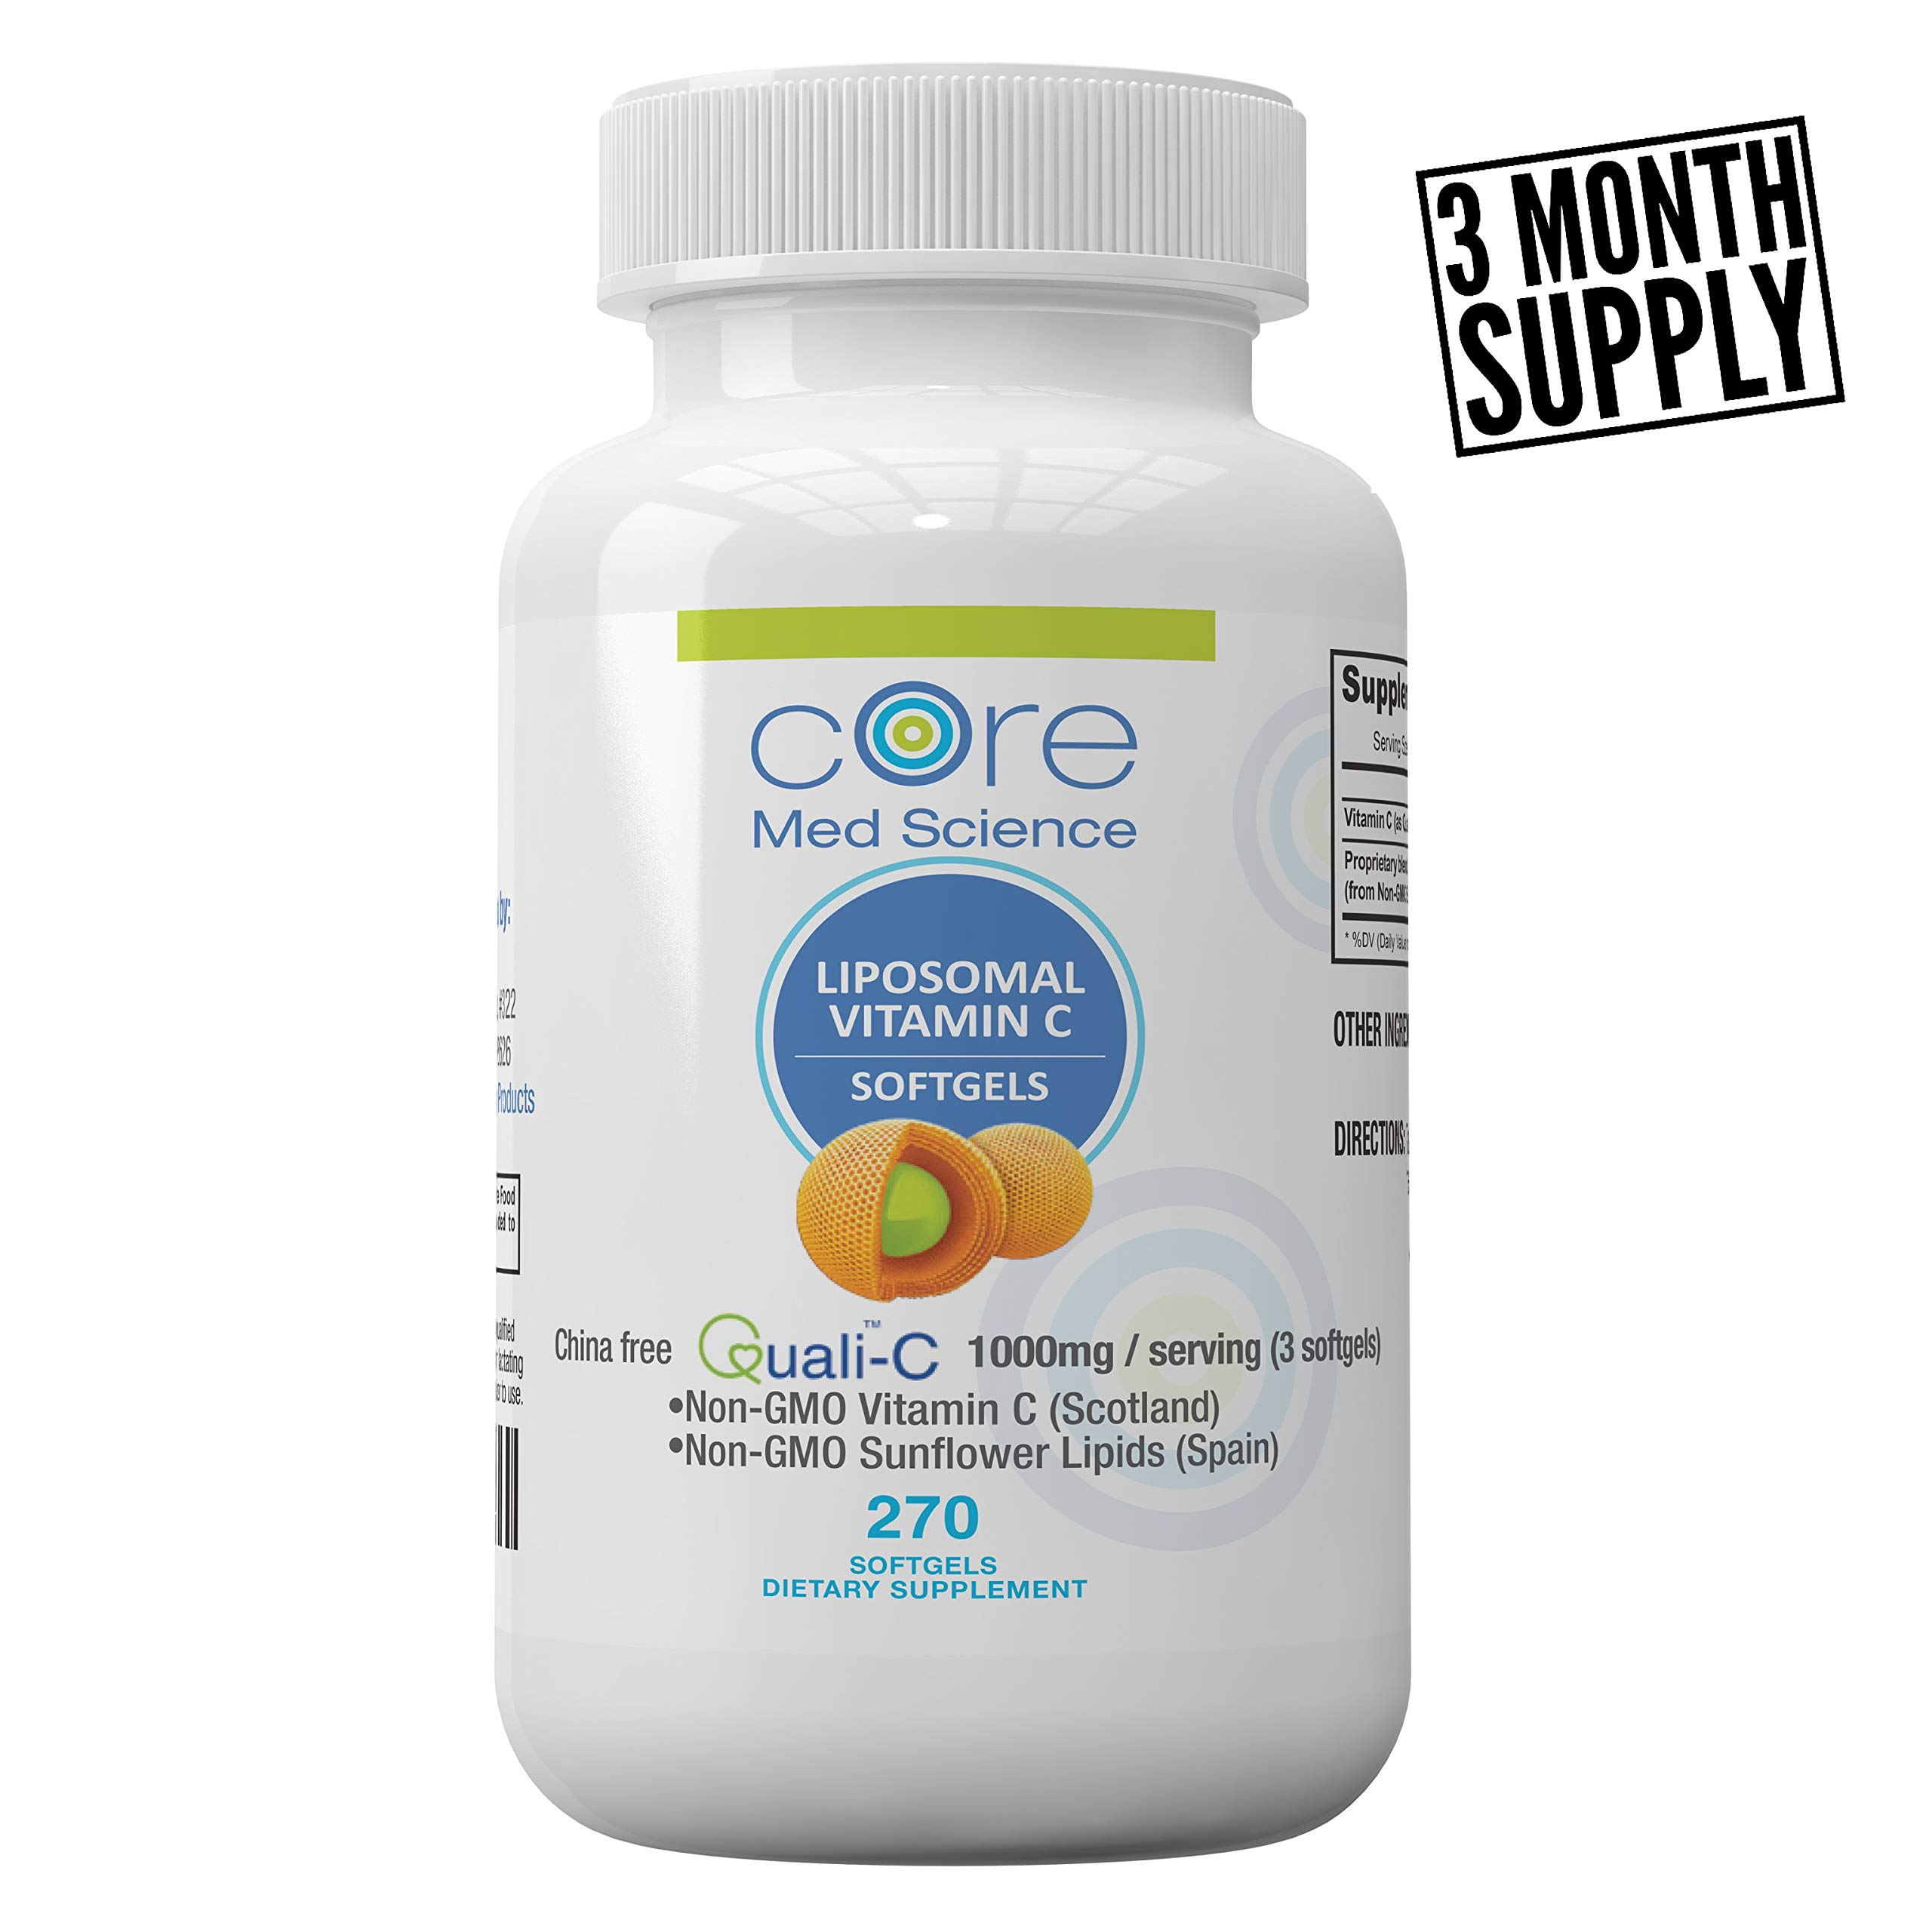 Liposomal Vitamin C Softgels 1000mg/dose - 3 Month Supply - 270 softgels - China-Free Quali®-C Scottish Ascorbic Acid - High Absorption Immunity & Collagen Booster Supplement - Non-GMO, Non-Soy by IV for Life